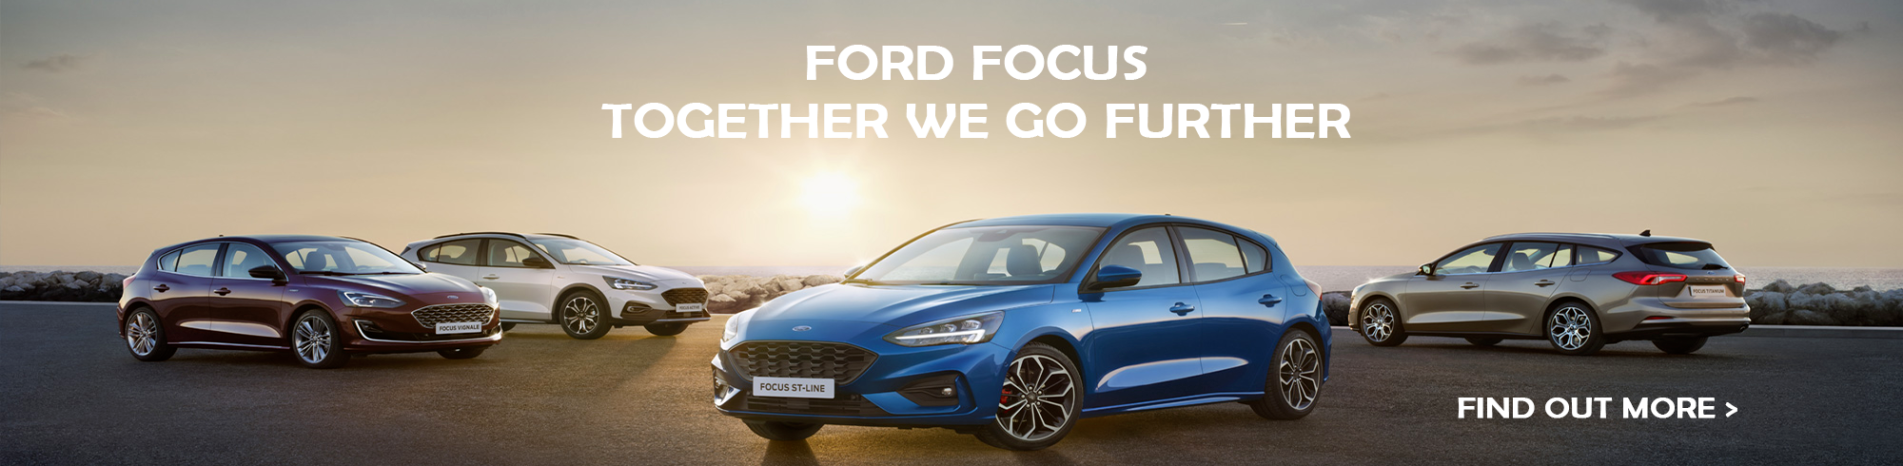 Ford Focus Together we go further